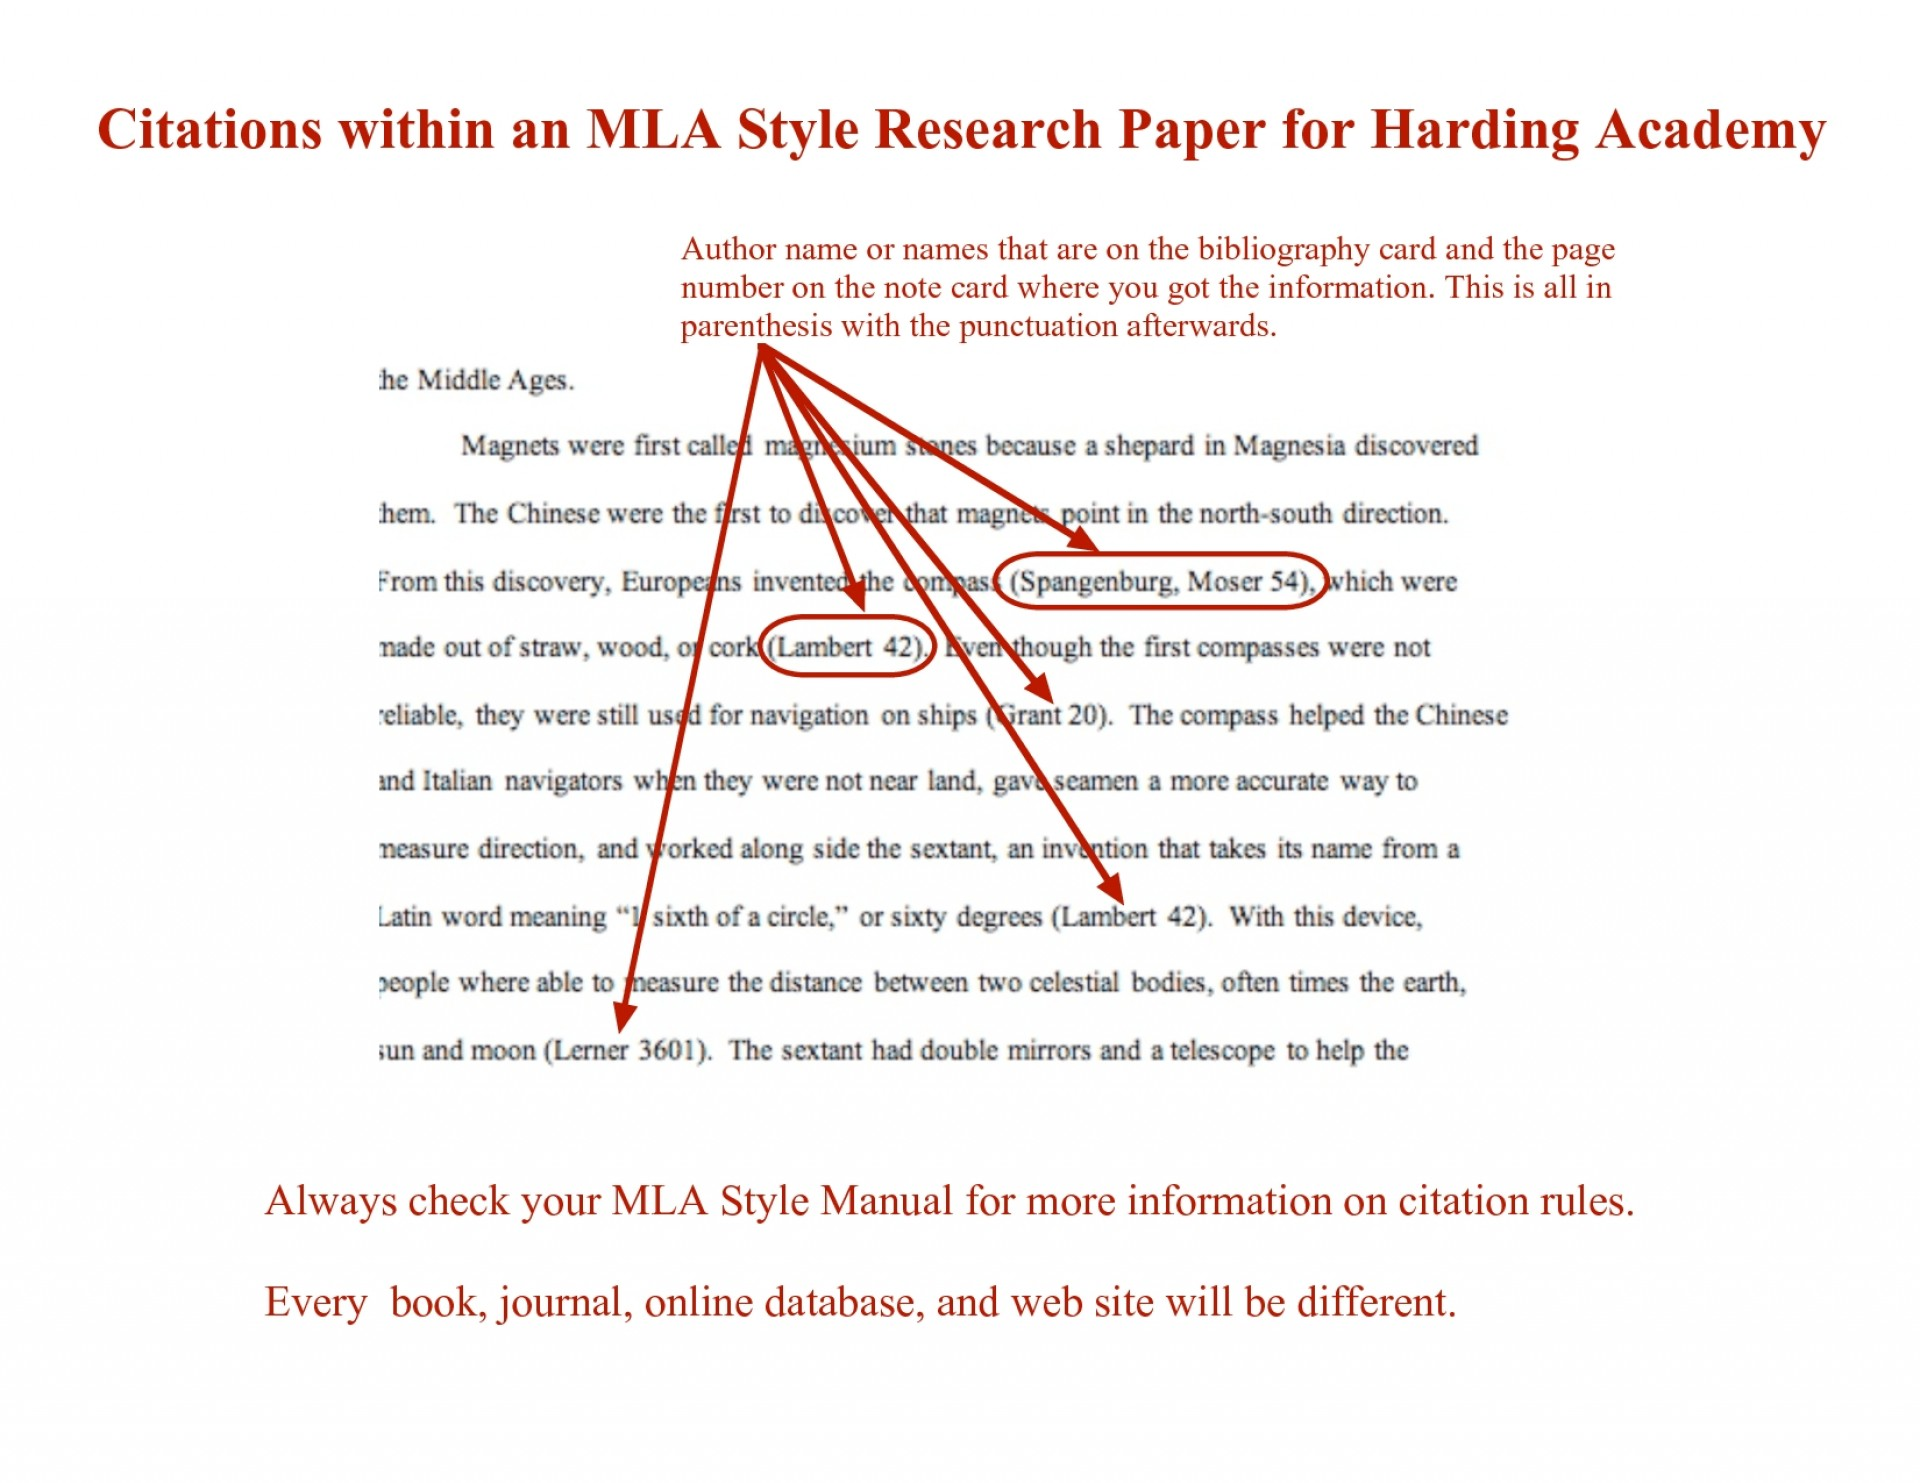 002 How To Cite An Essay In Book Collection Of Solutions Quote From Website Mla Stunning Research Paper Citation Outstanding A Harvard Properly Apa 1920